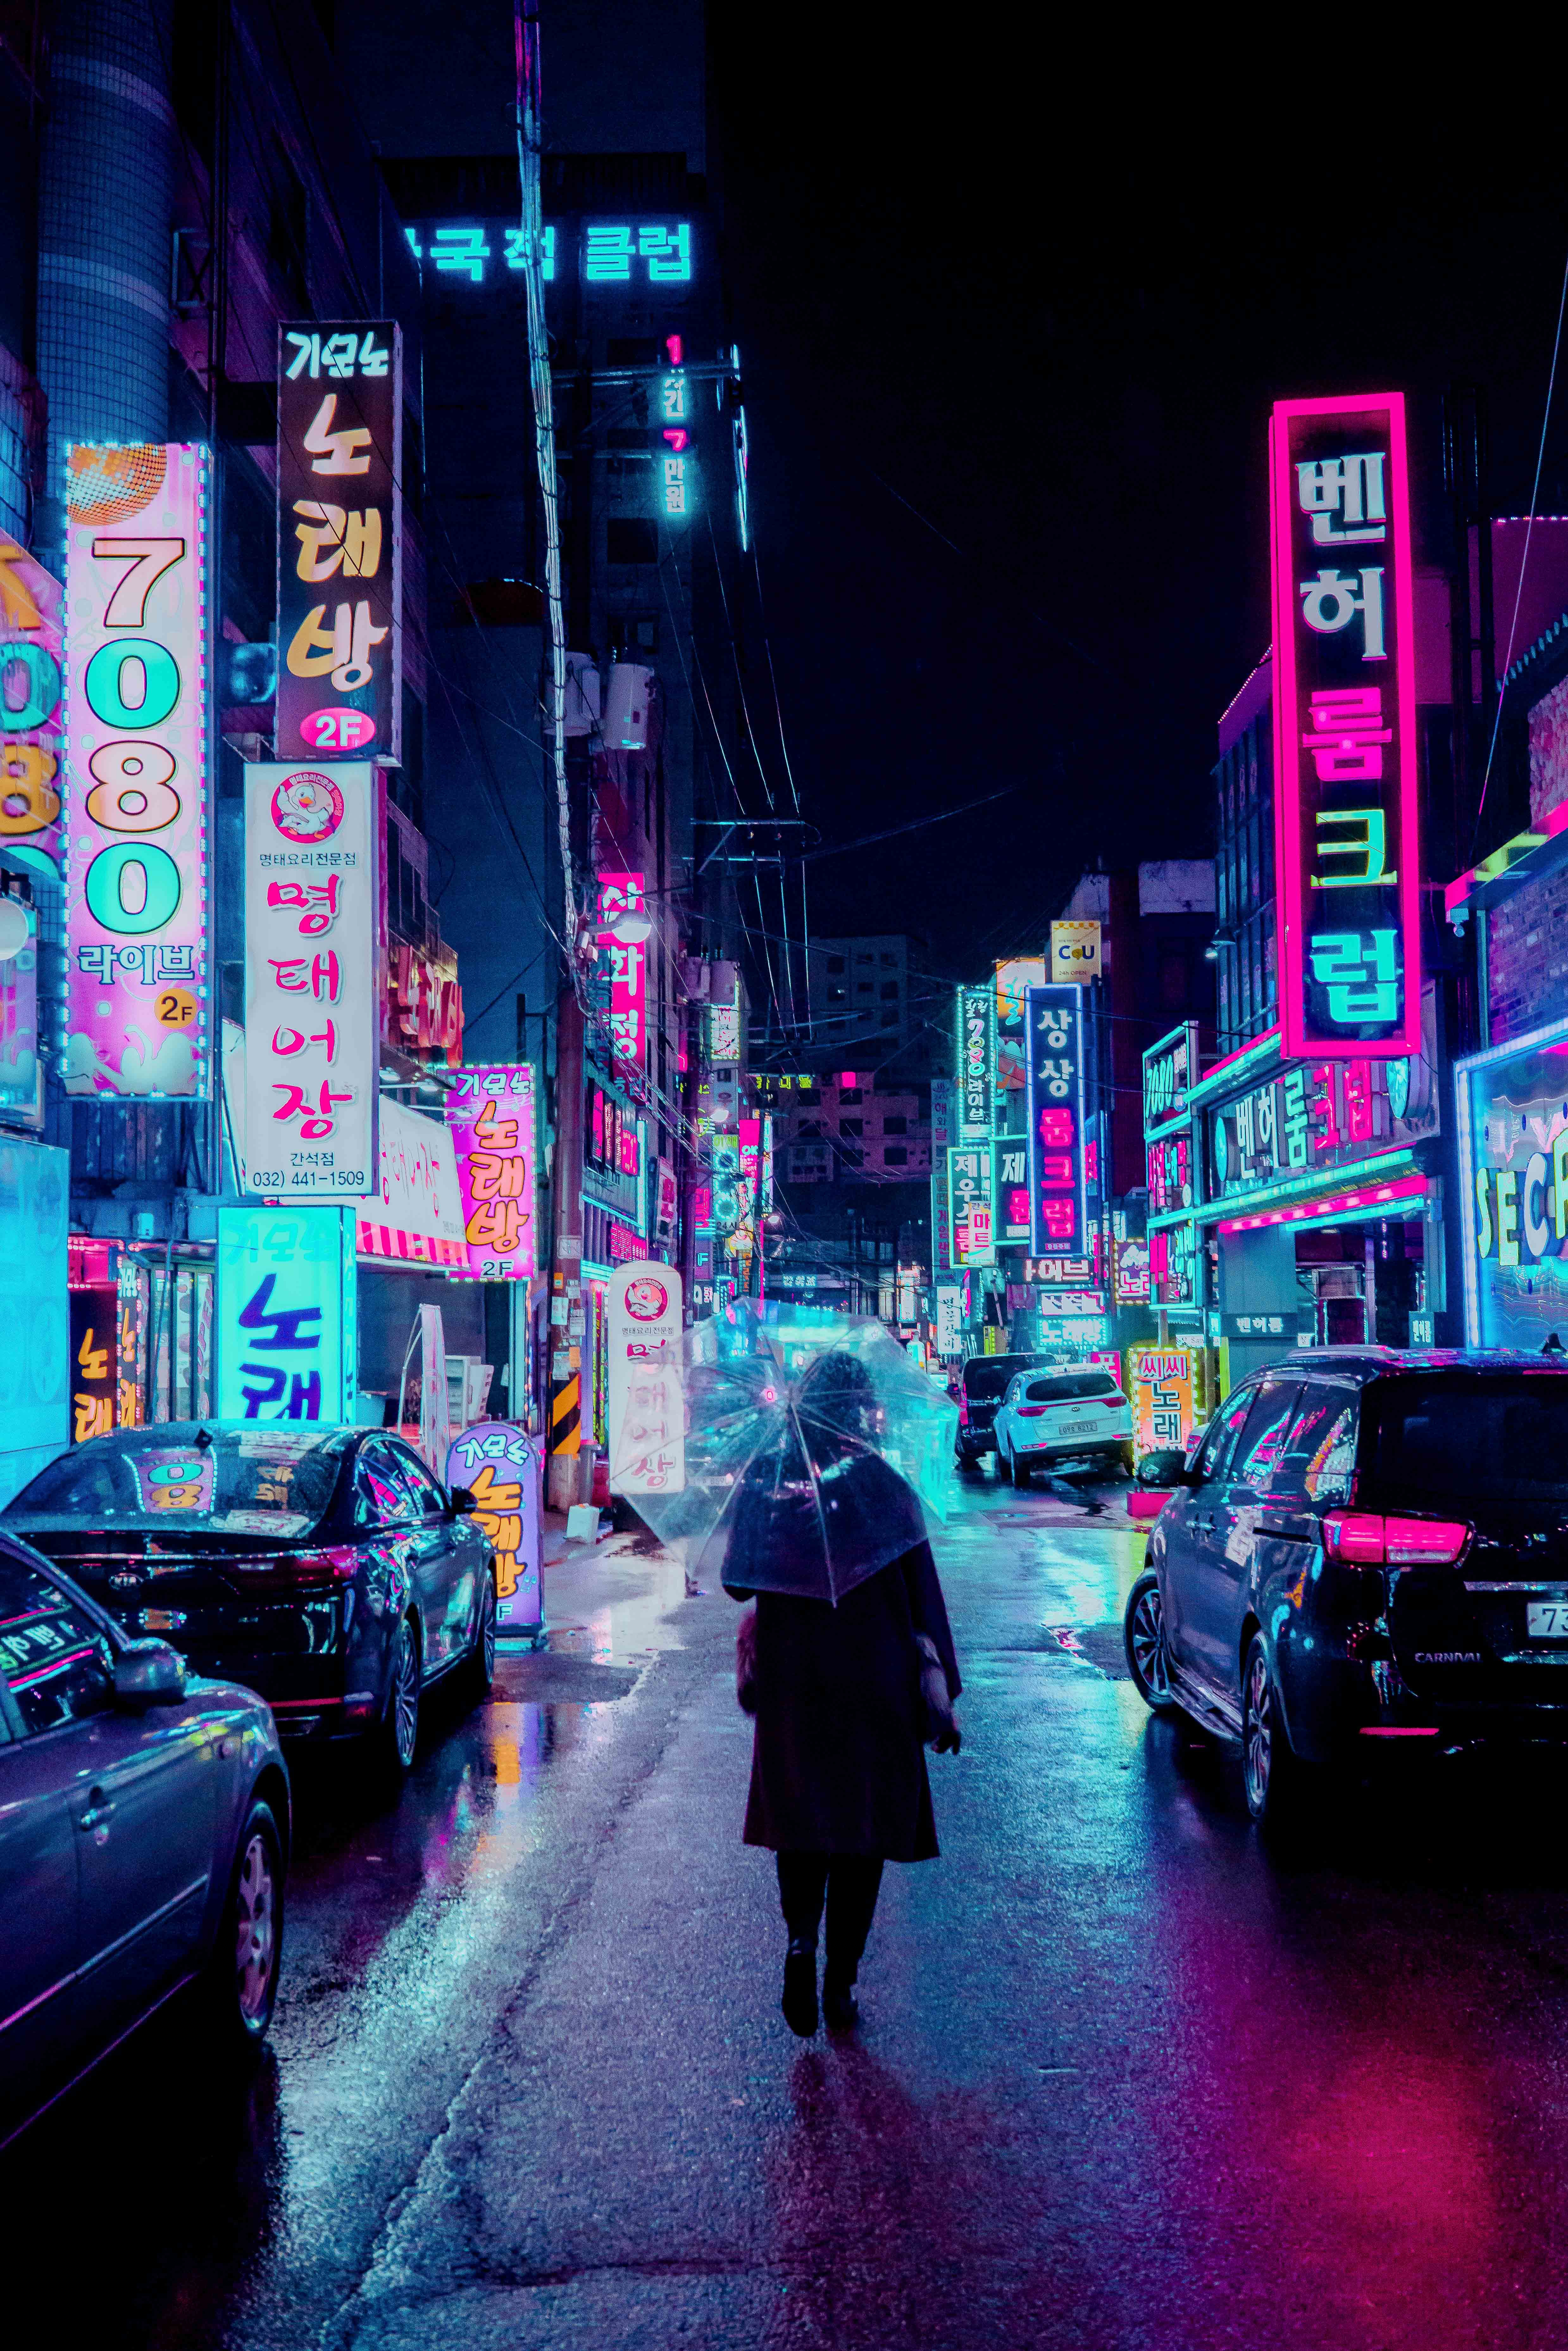 138257 Screensavers and Wallpapers Cities for phone. Download Umbrella, Cities, Signs, Night City, Neon, Backlight, Illumination, Human, Person, Street, Signboards pictures for free